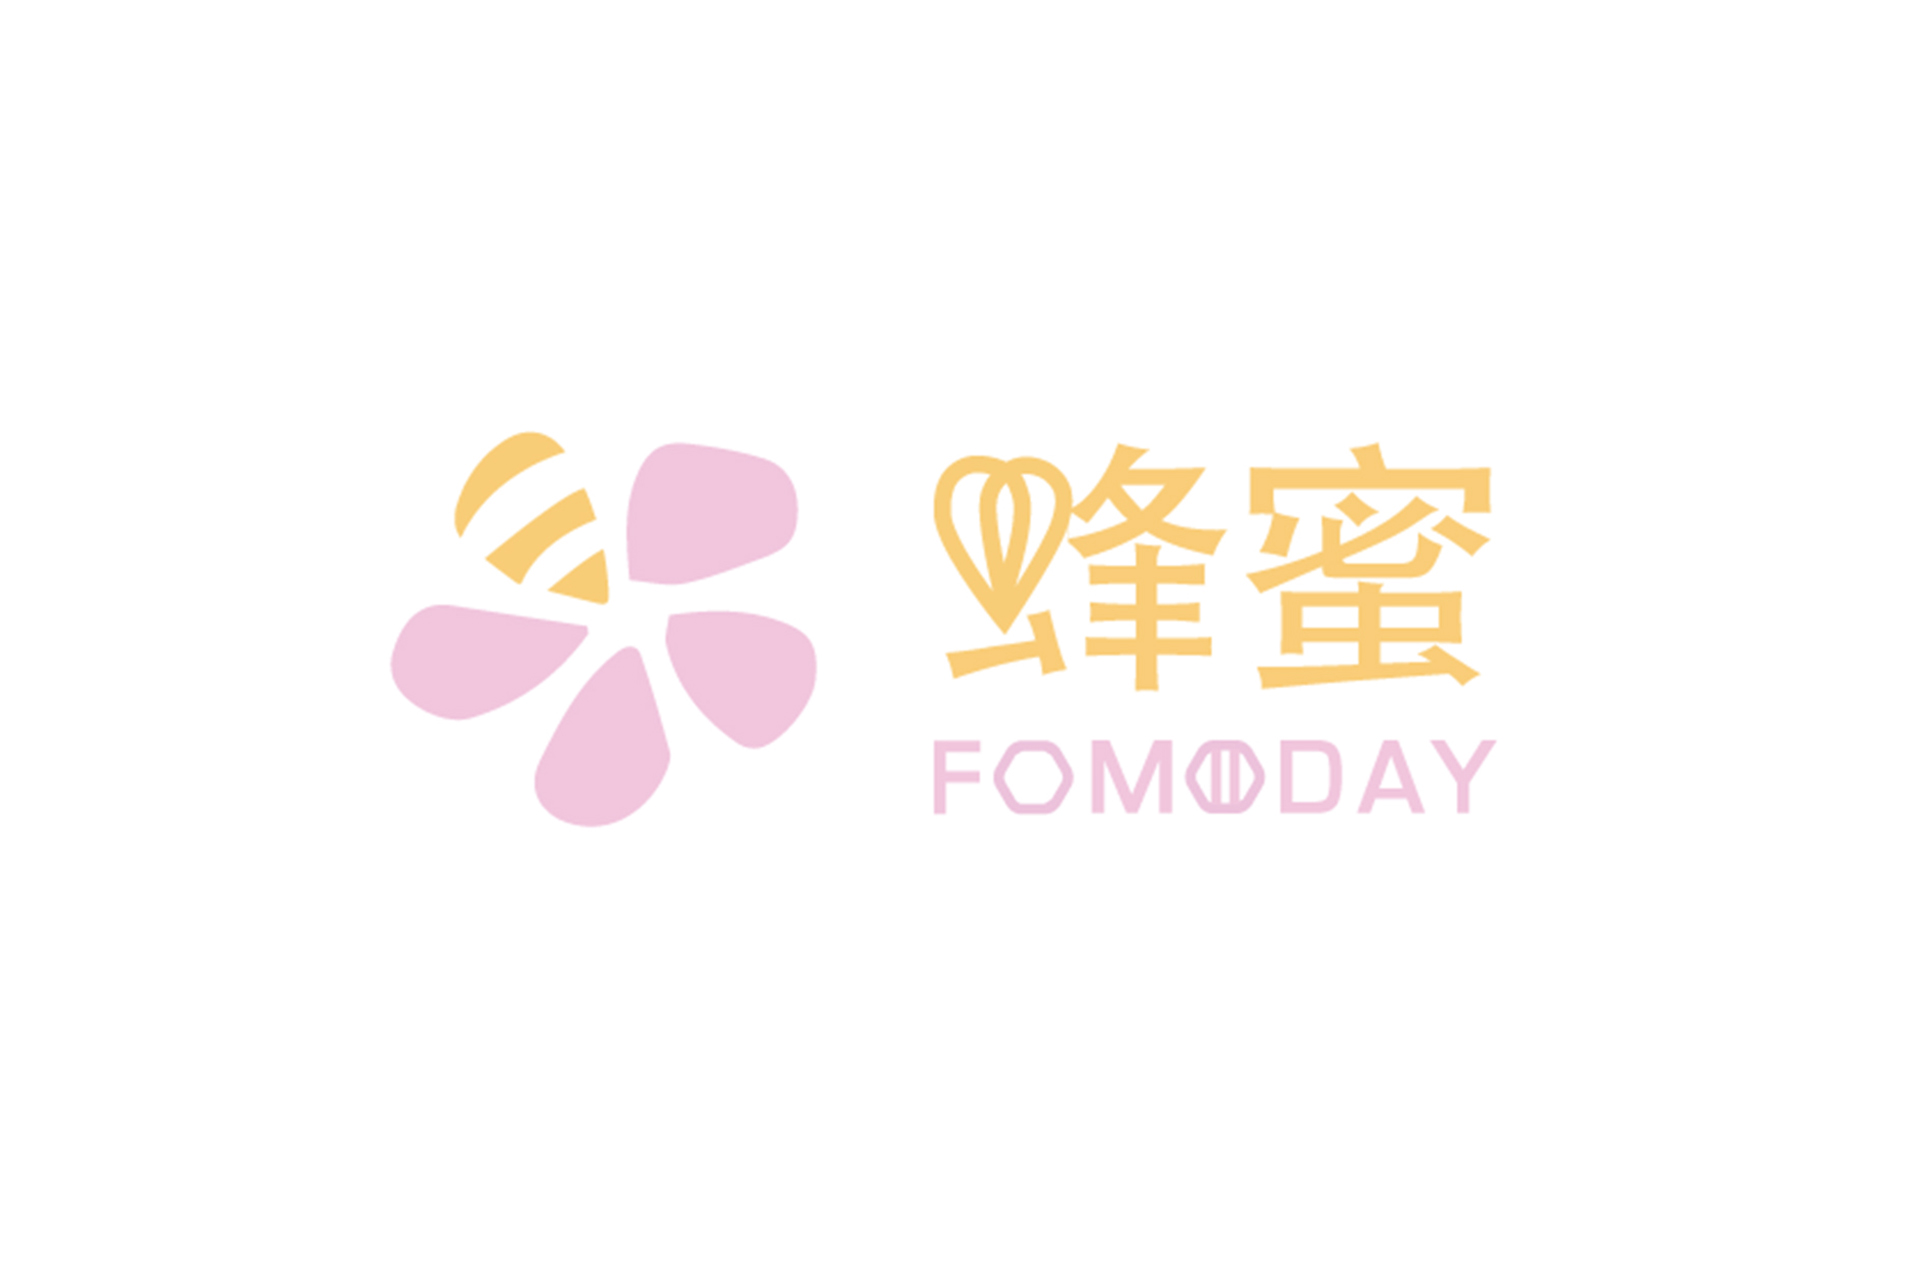 Fomoday_logo02.jpg